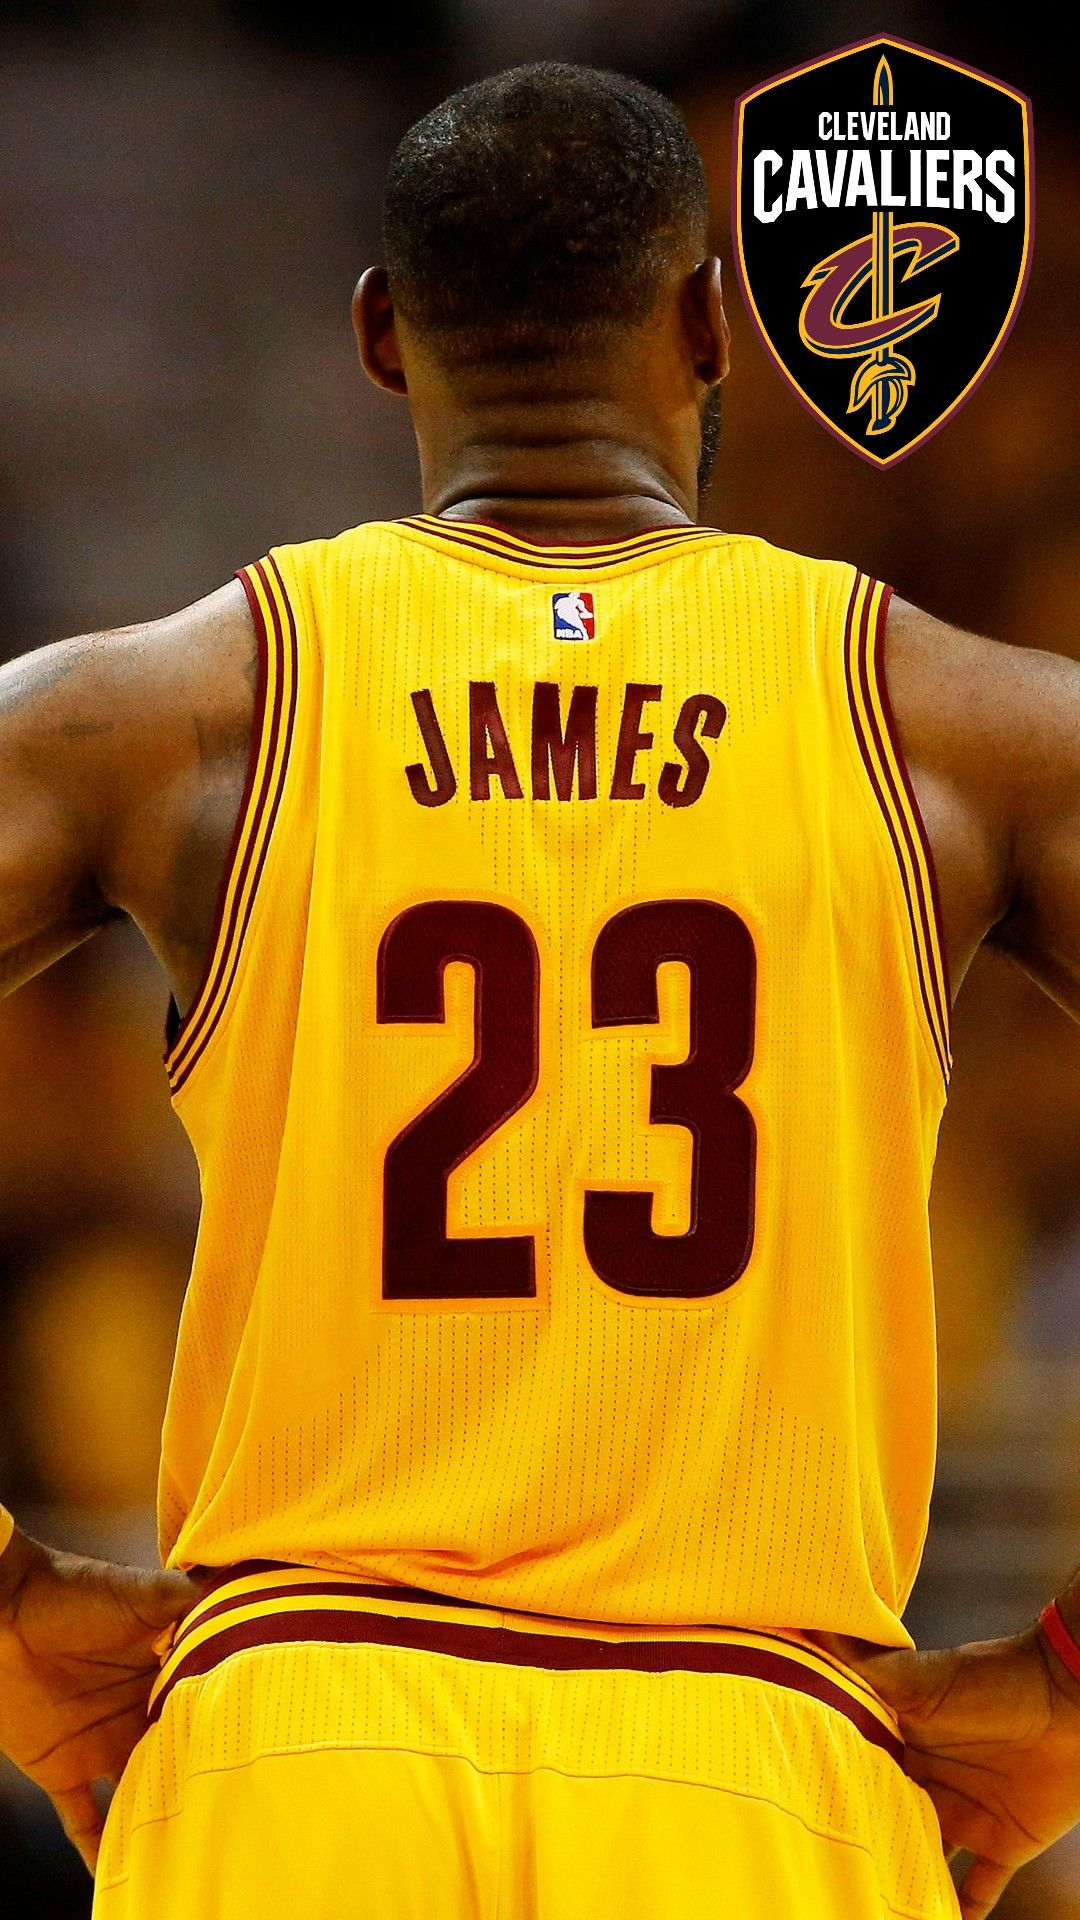 Wallpaper LeBron James iPhone is the perfect High Quality